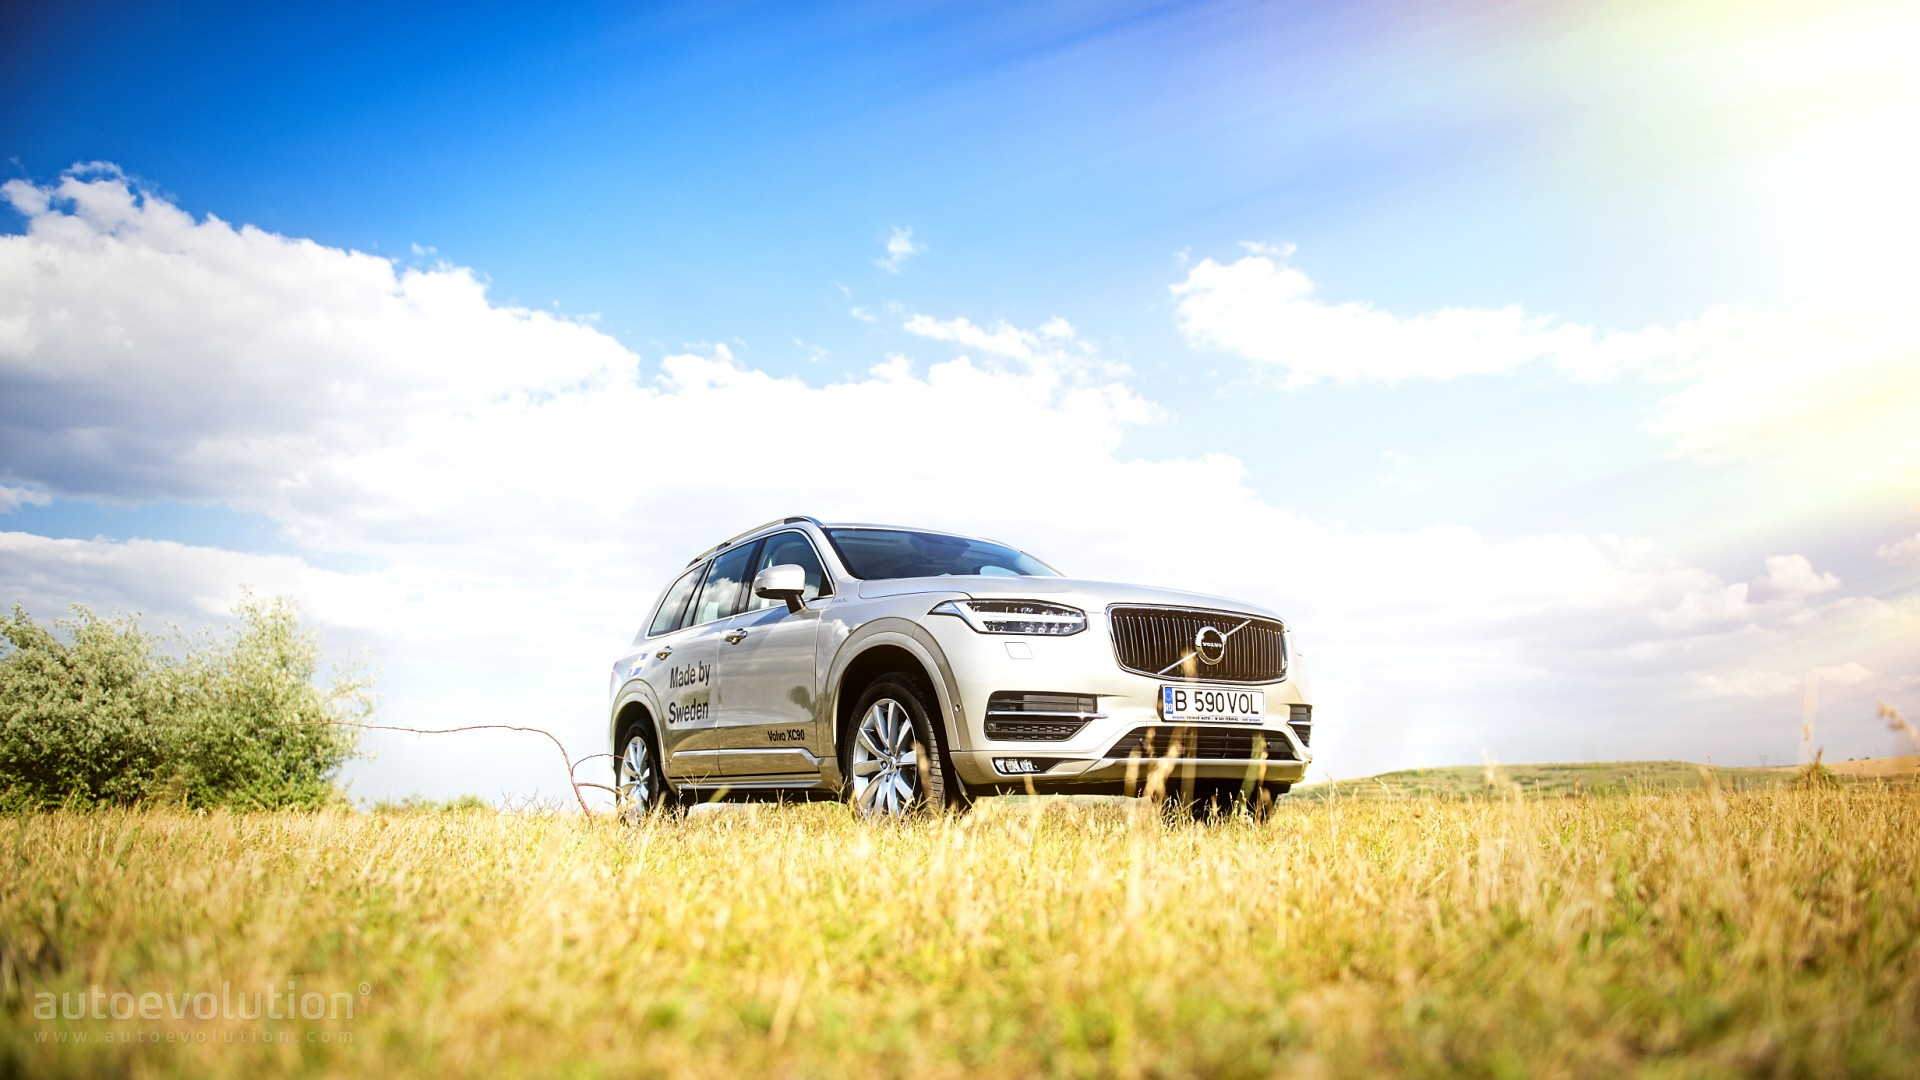 2016 volvo xc90 hd wallpapers thor 2 0 autoevolution - 2 0 wallpaper ...